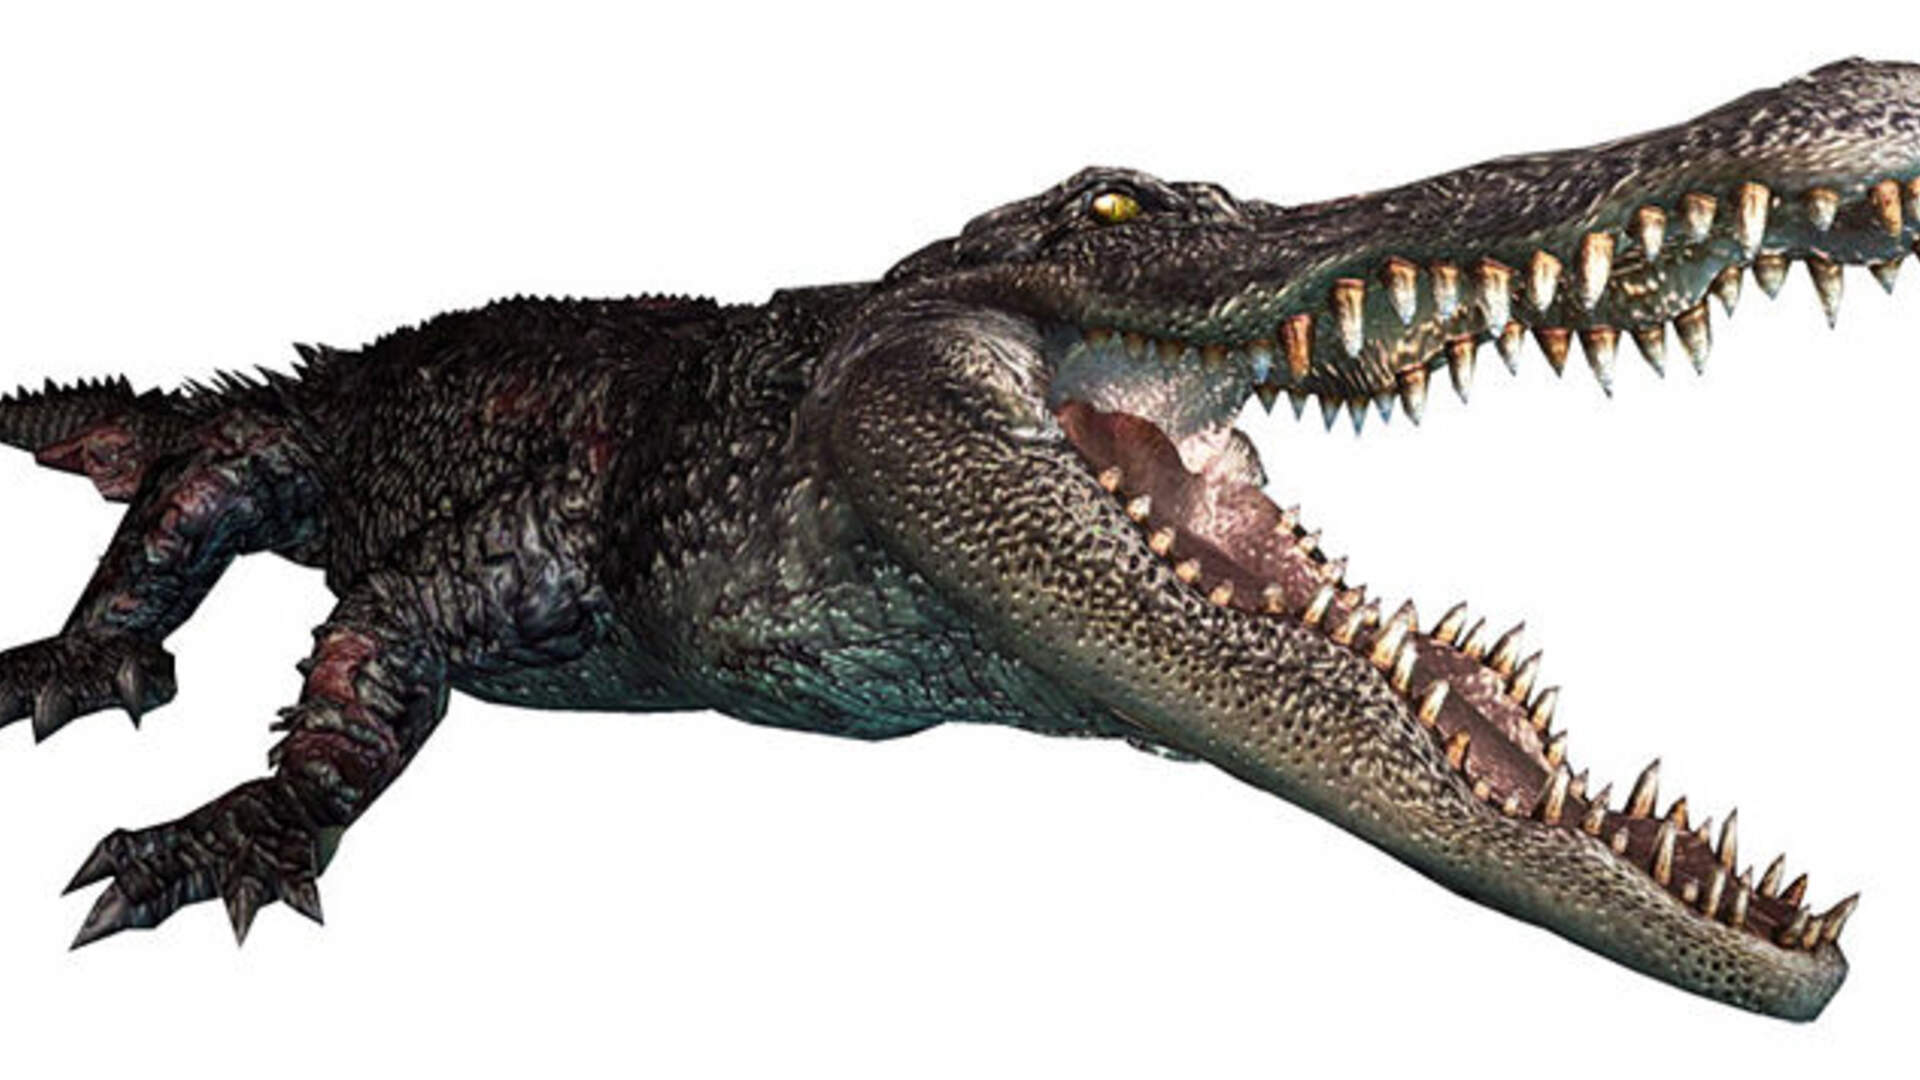 Resident Evil 2 Remake Includes the Giant Alligator, Tofu, and Hunk